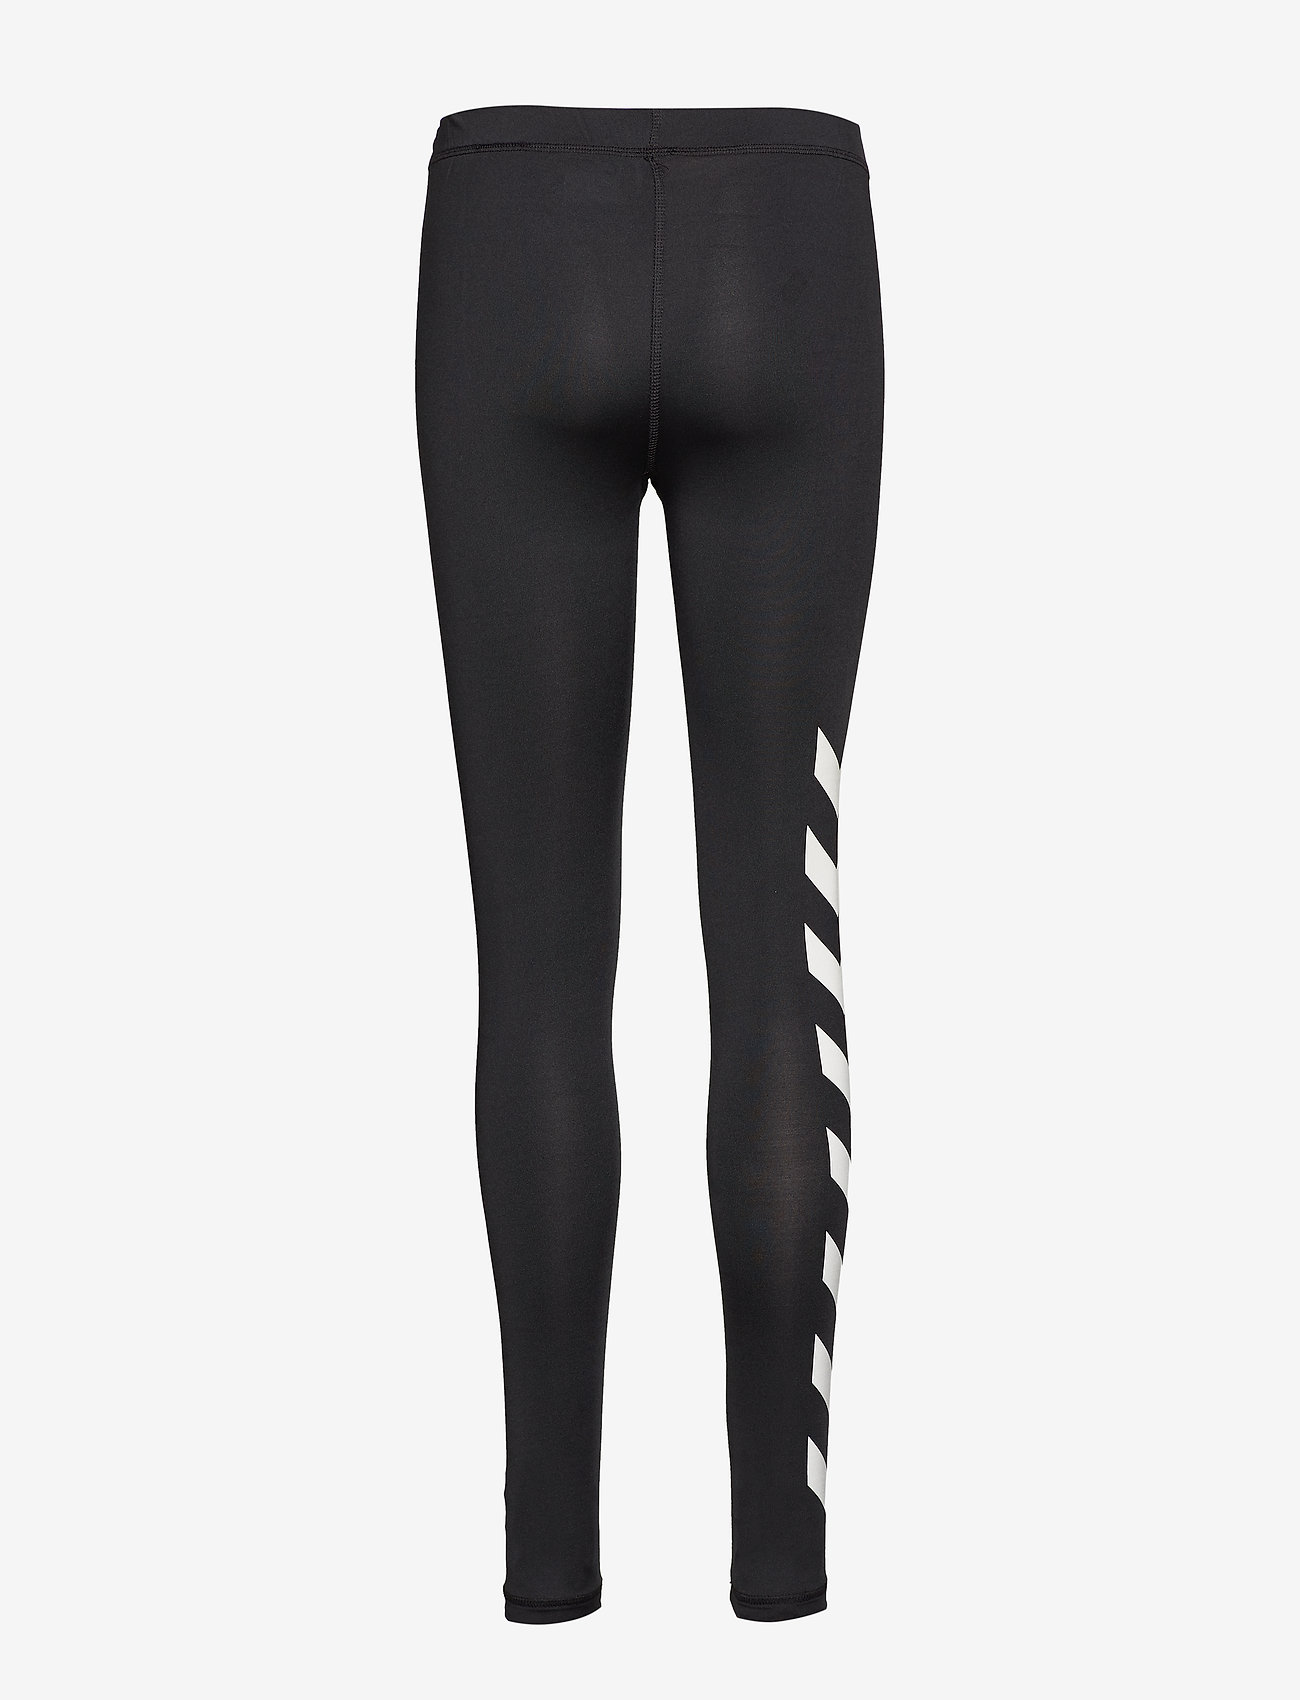 Hmllily Tights (Black) - Hummel GIpyY7